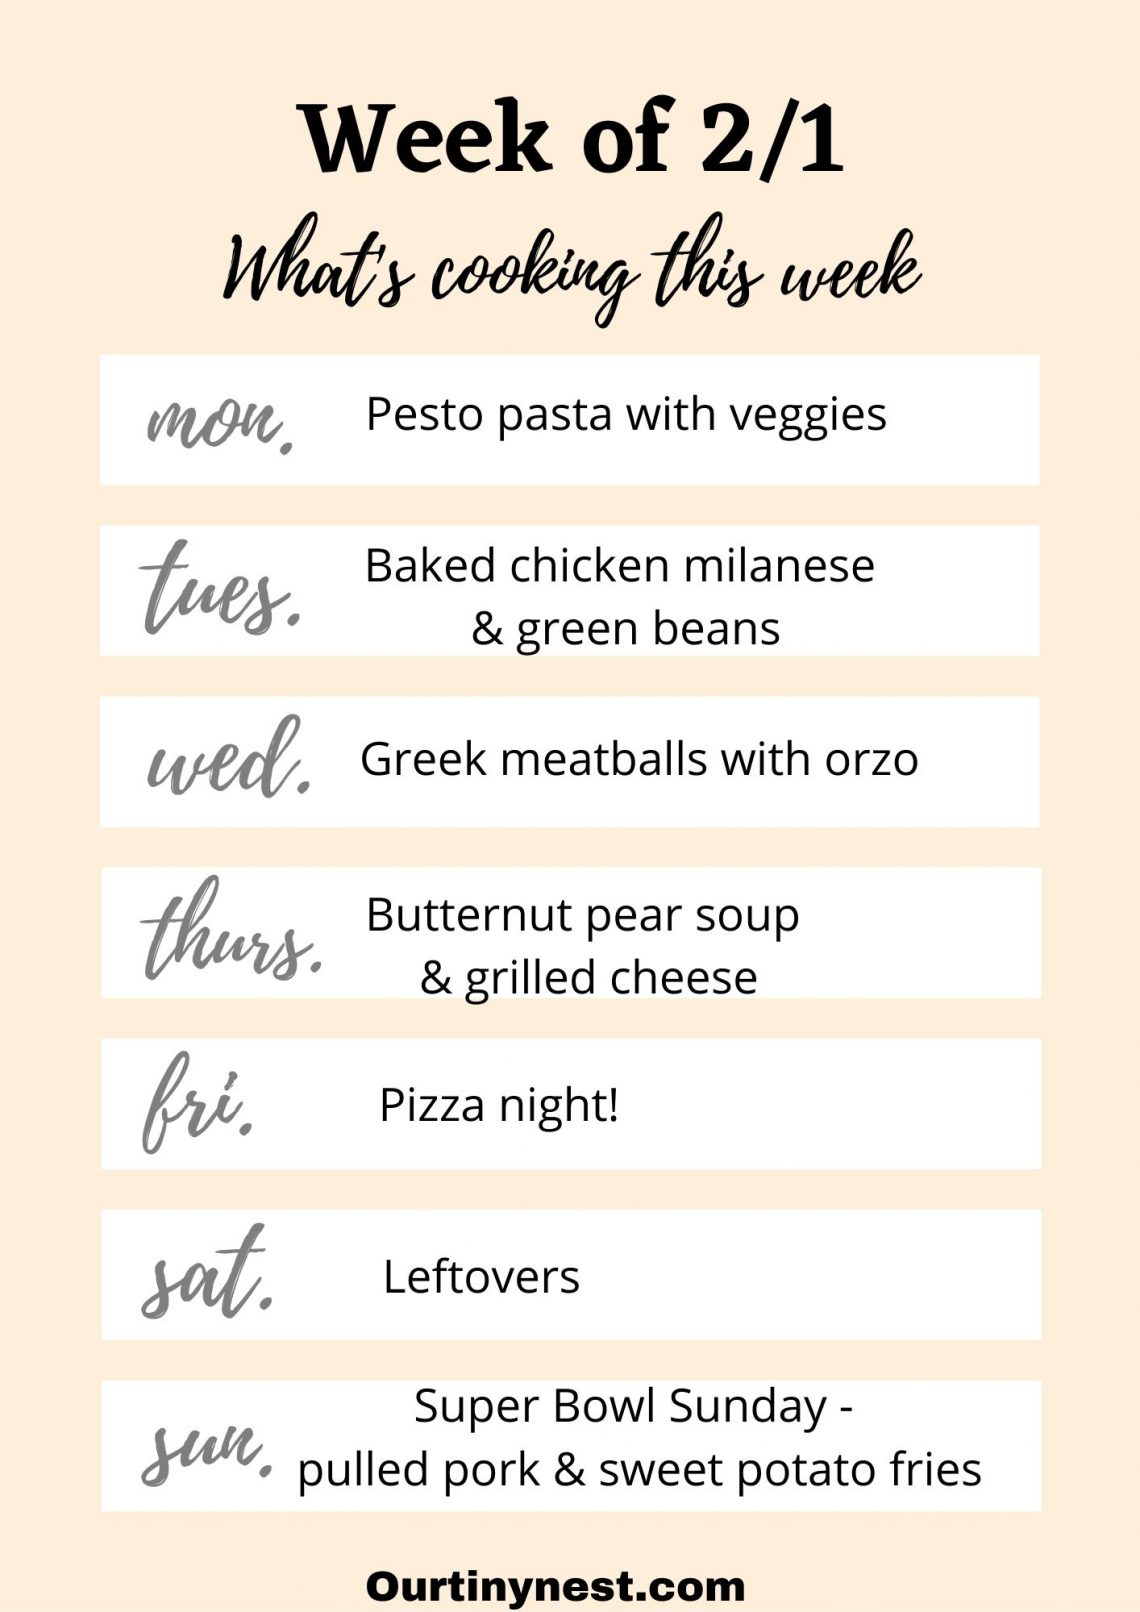 week of 2/1 meal plan